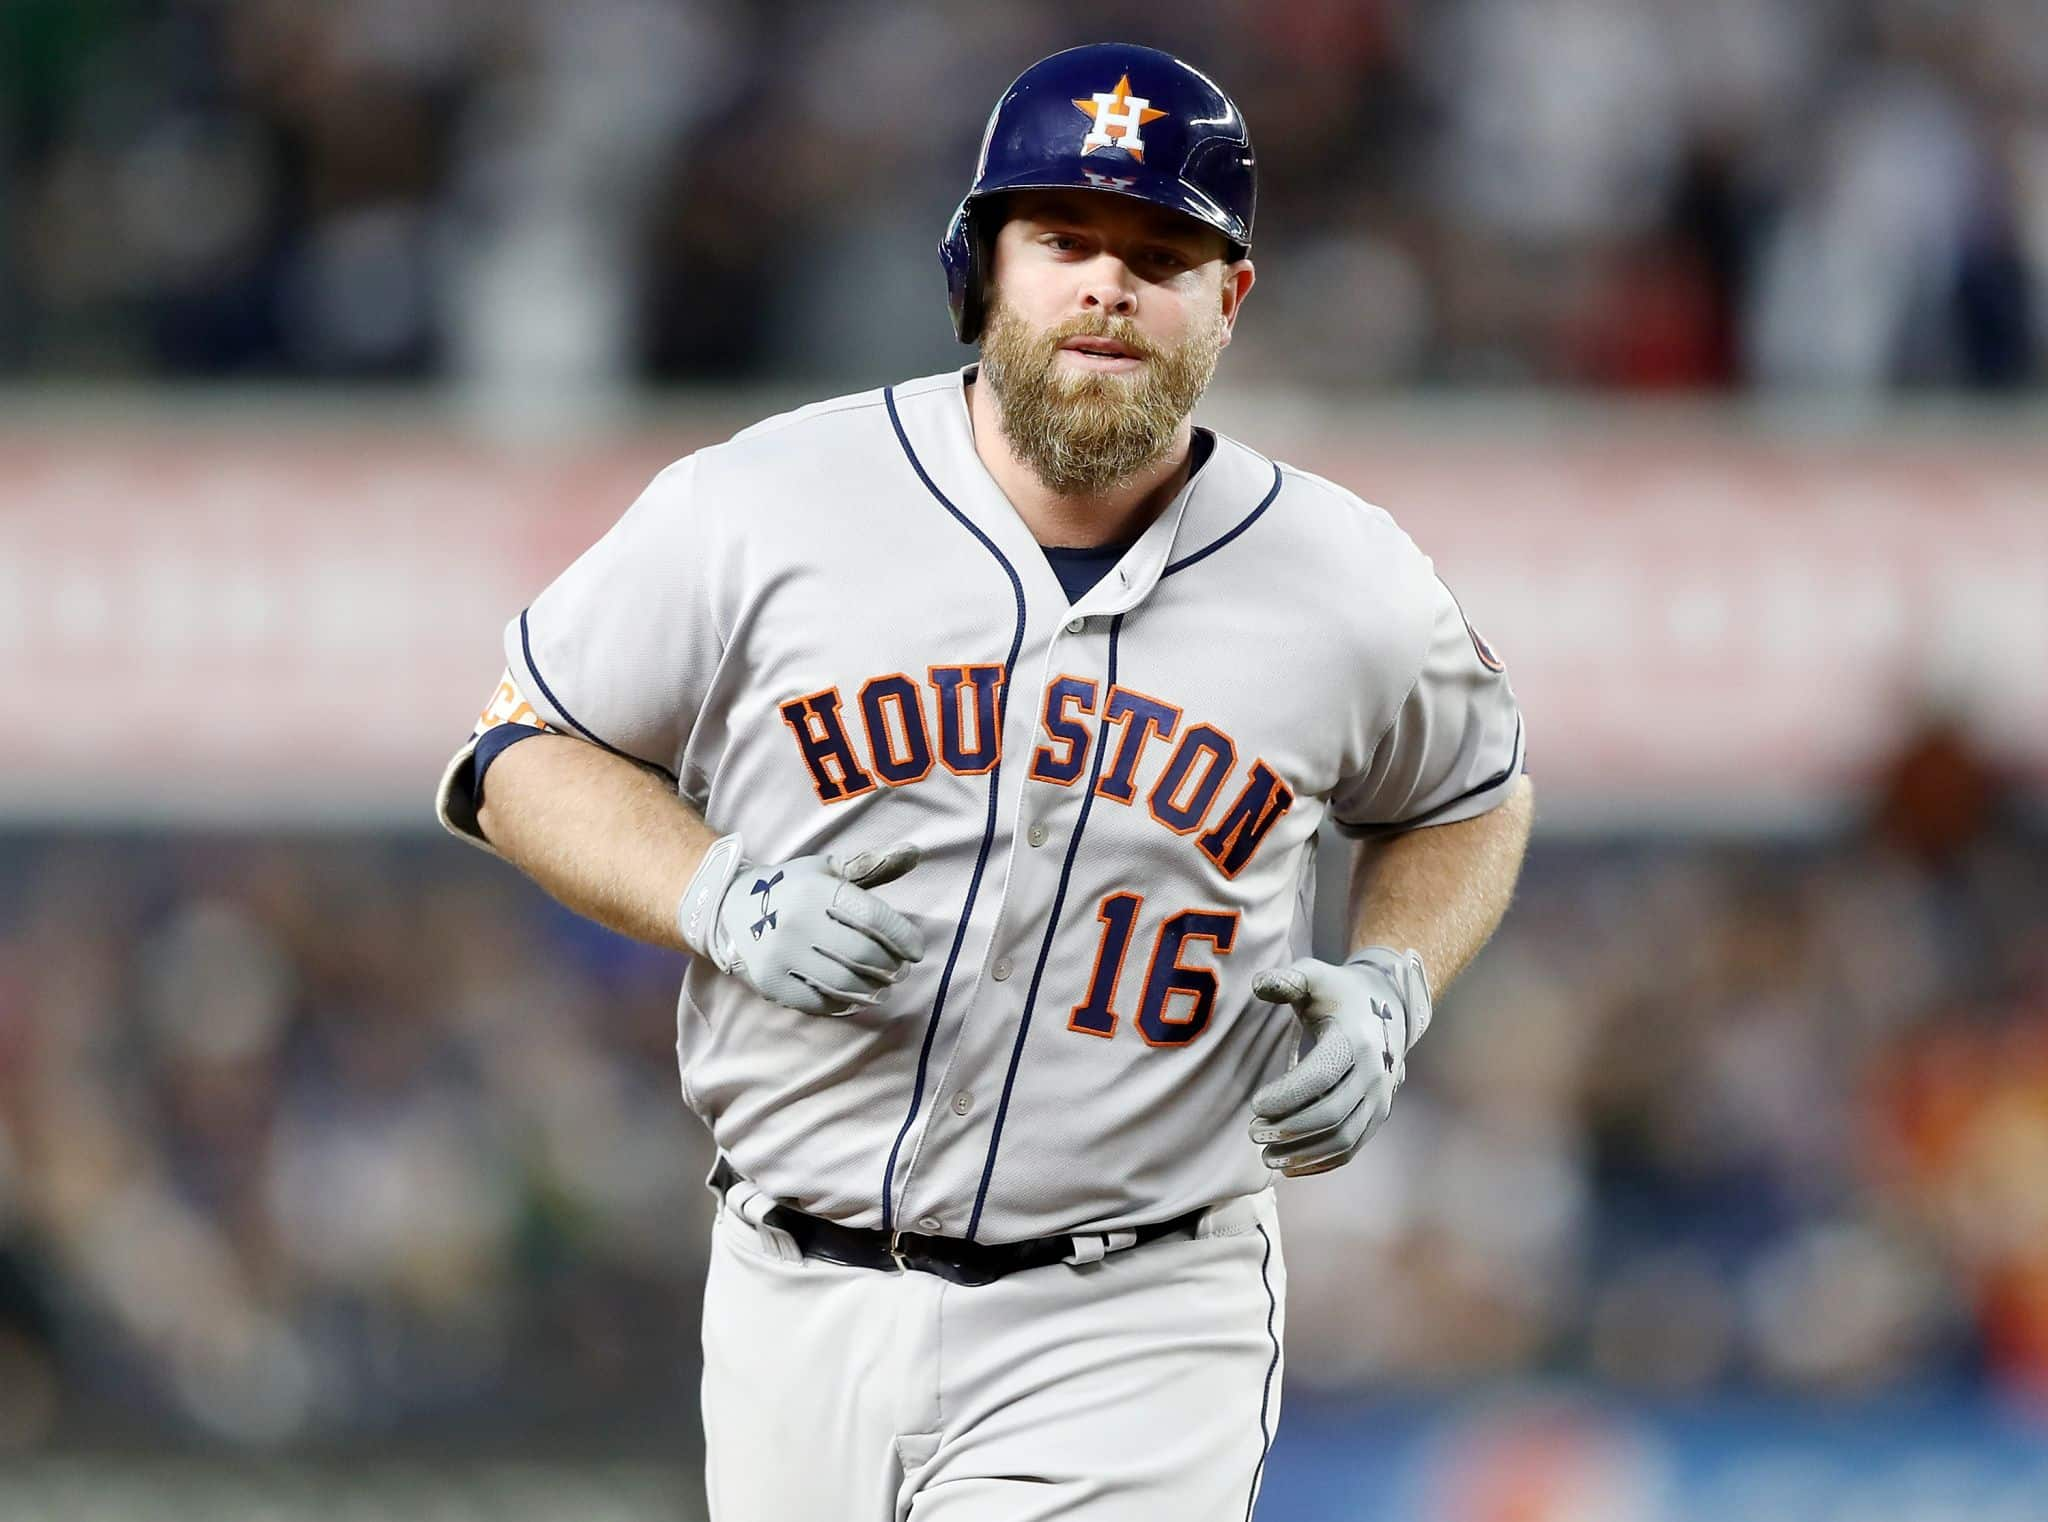 Former Houston Astros catcher Brian McCann circling the bases